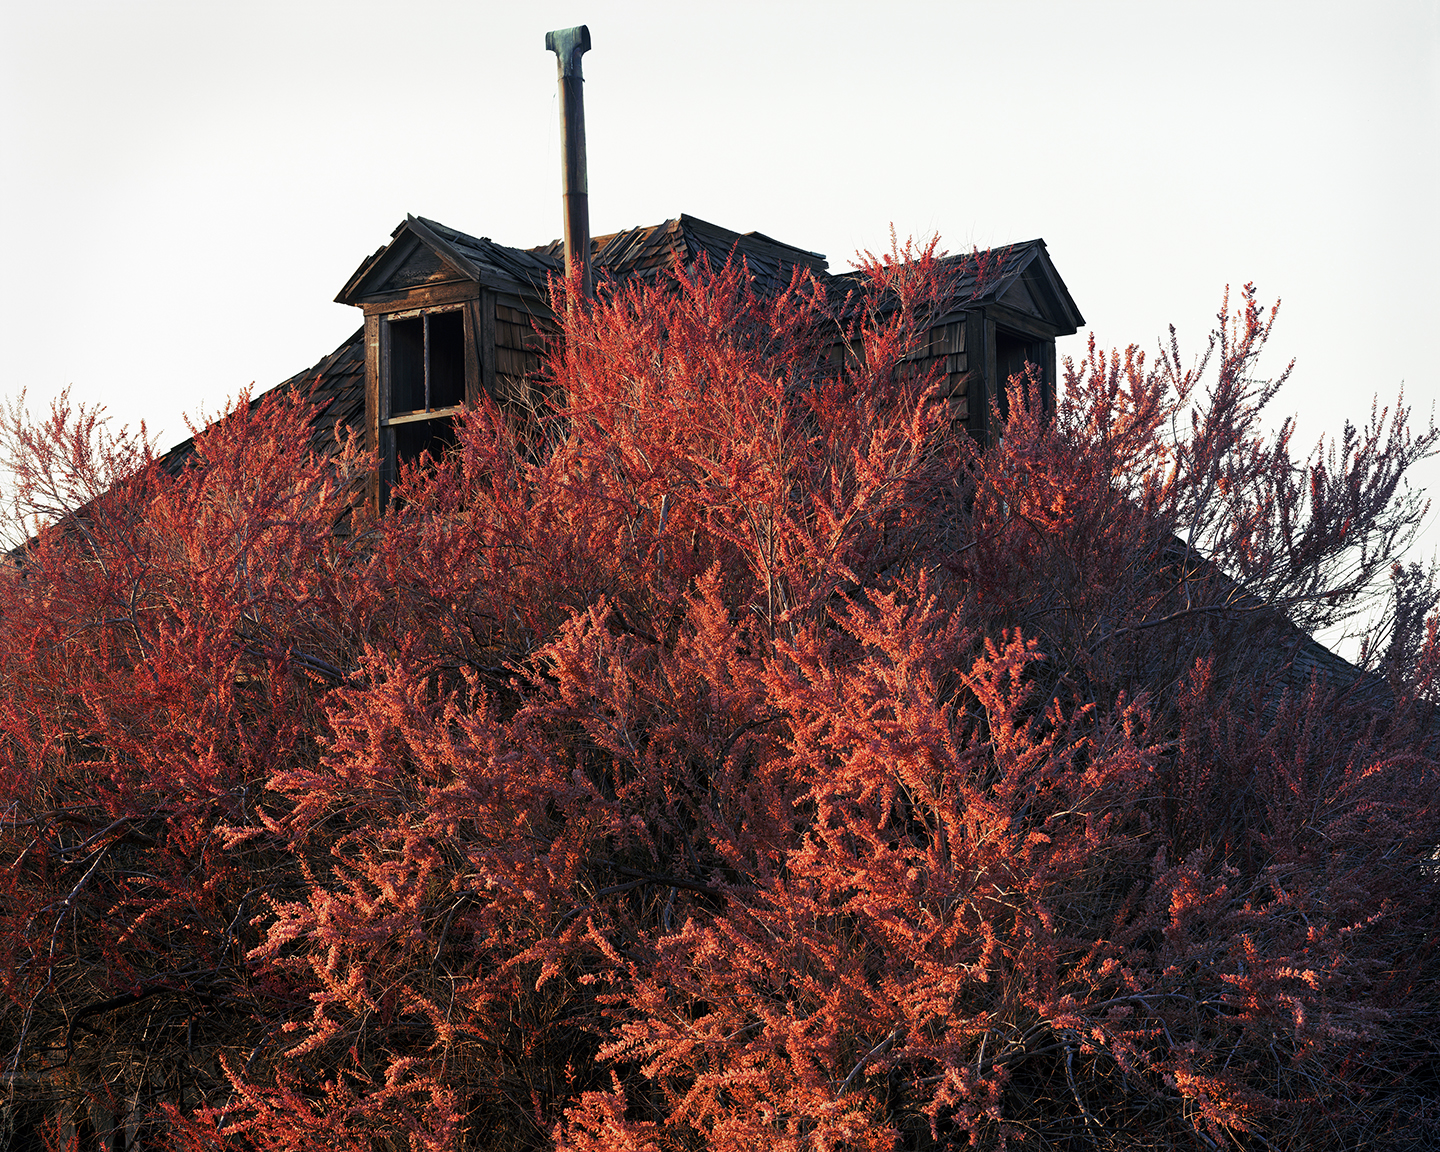 Blooming Tamarisk (in the town where my great-grandmother died), Goldfield, Nevada, 2015